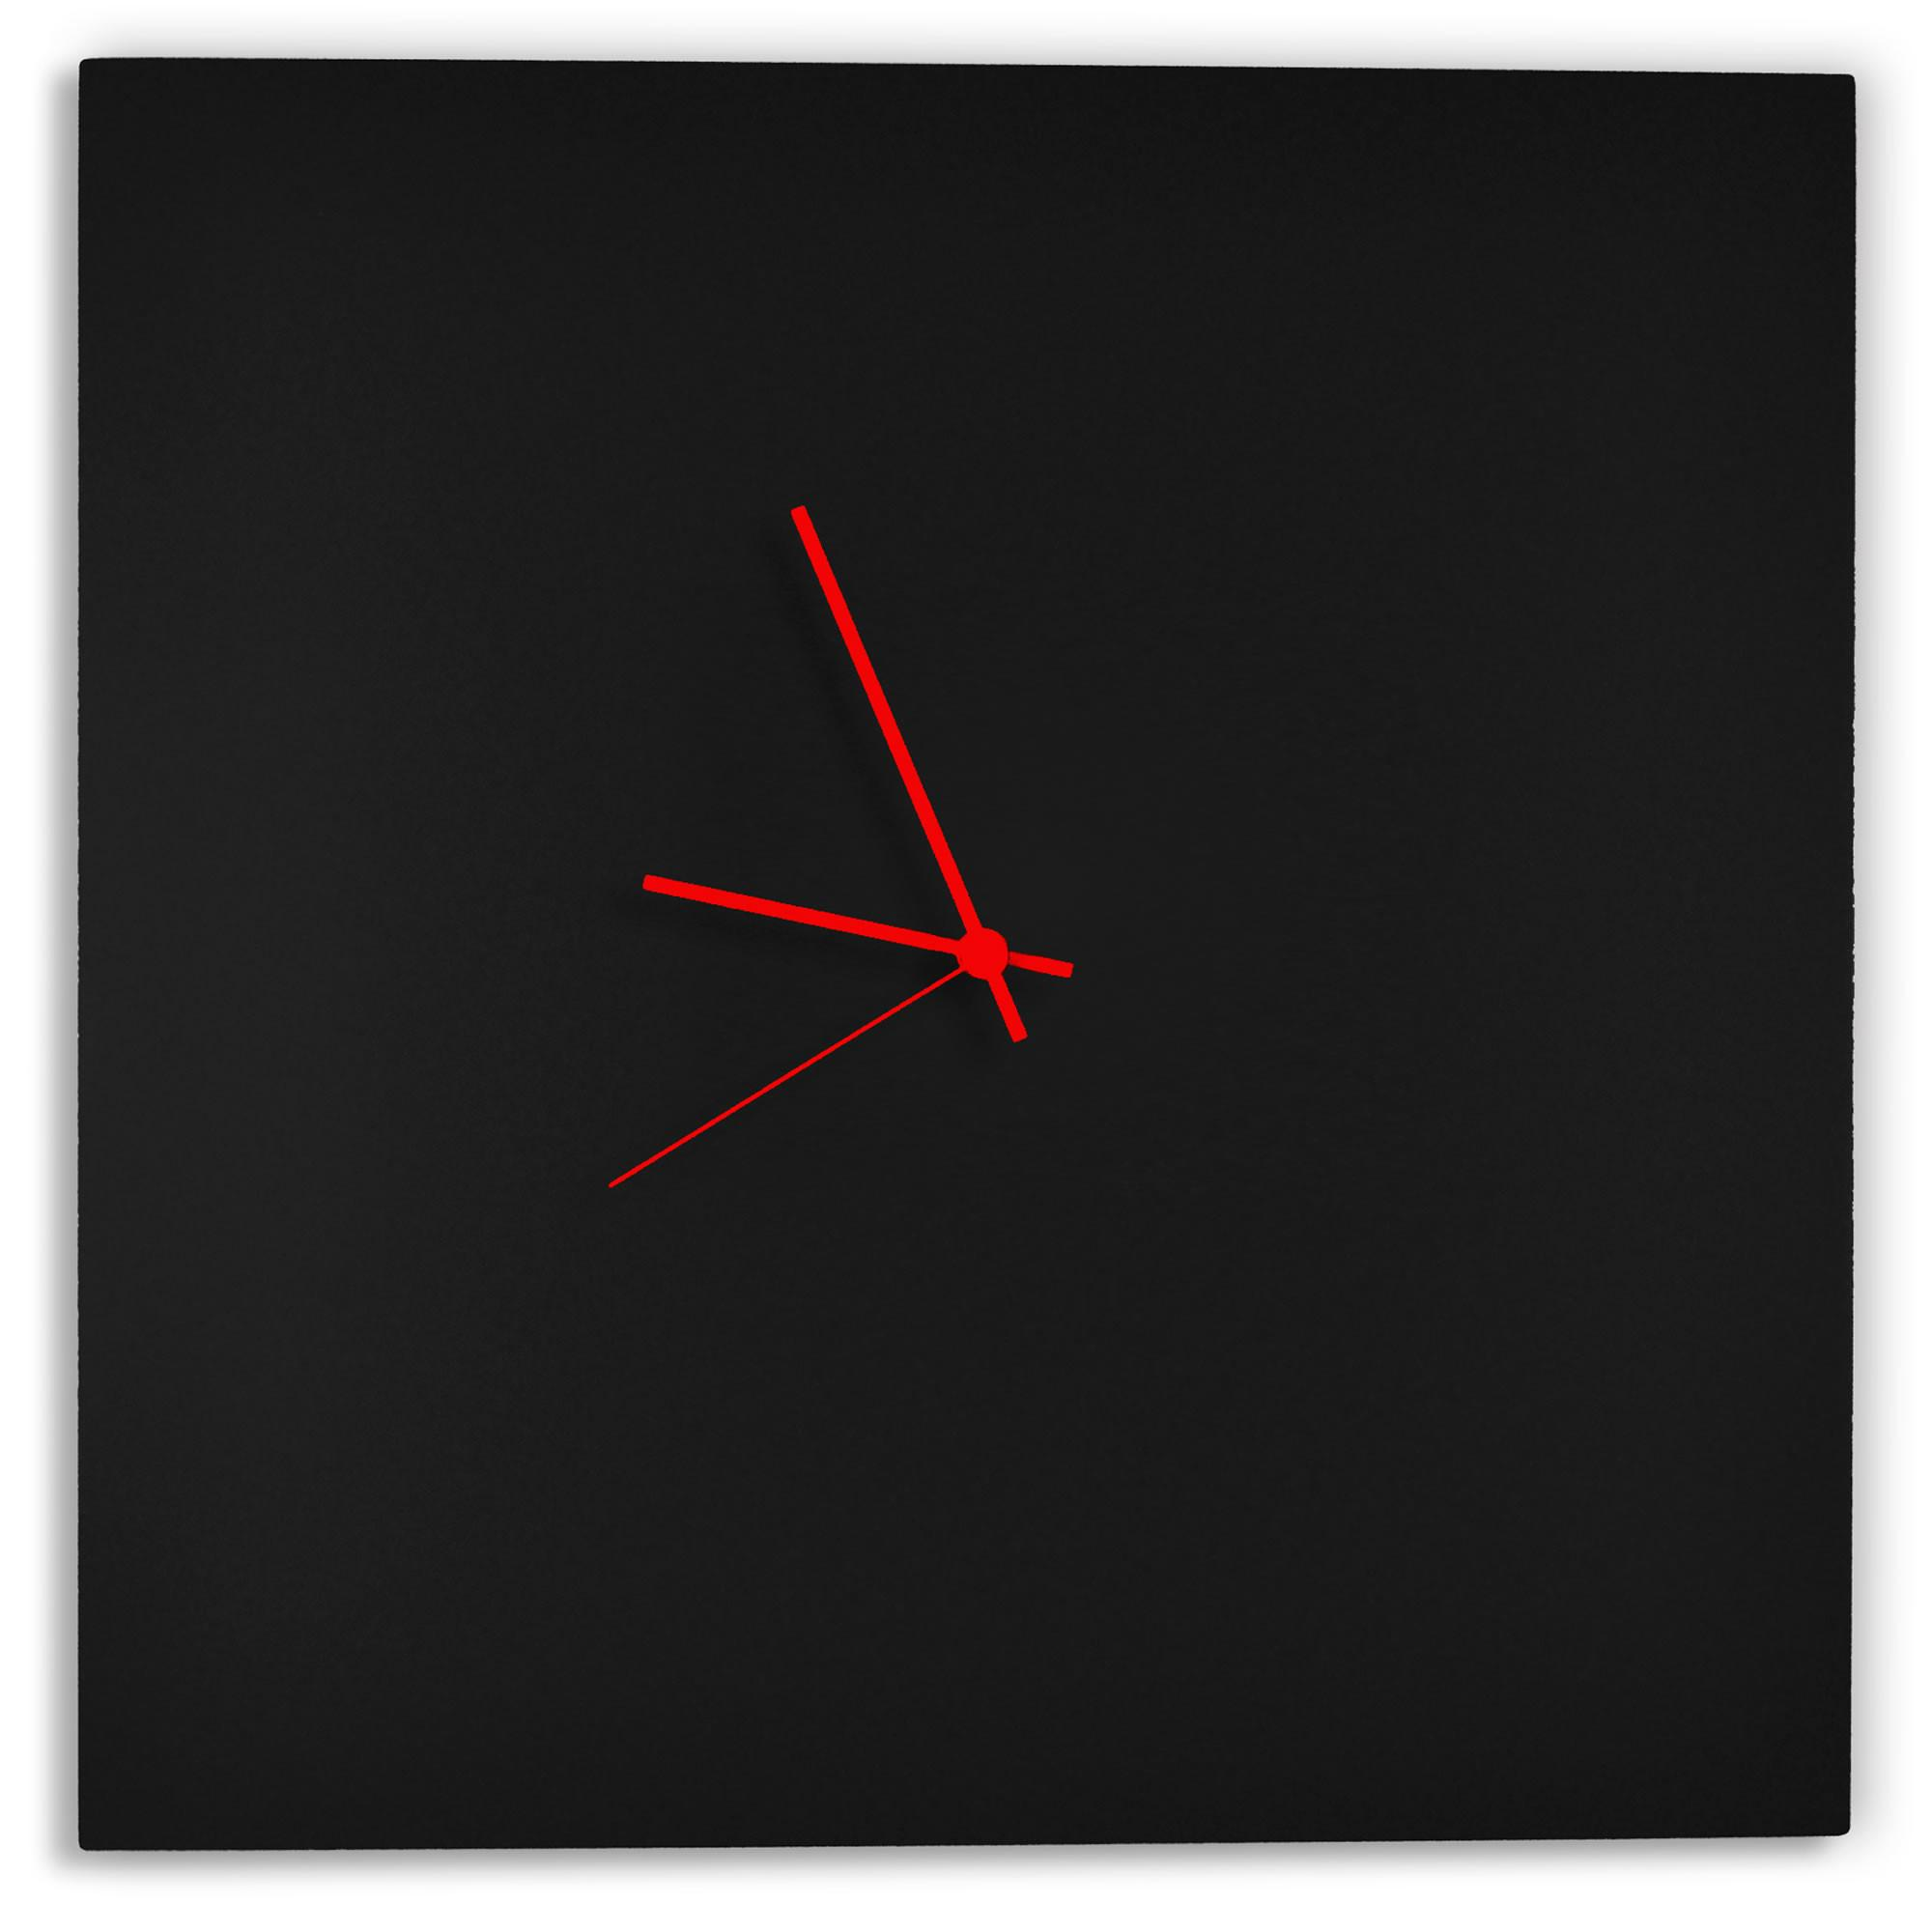 Wall Decor Sale Blackout Red Square Clock Modern